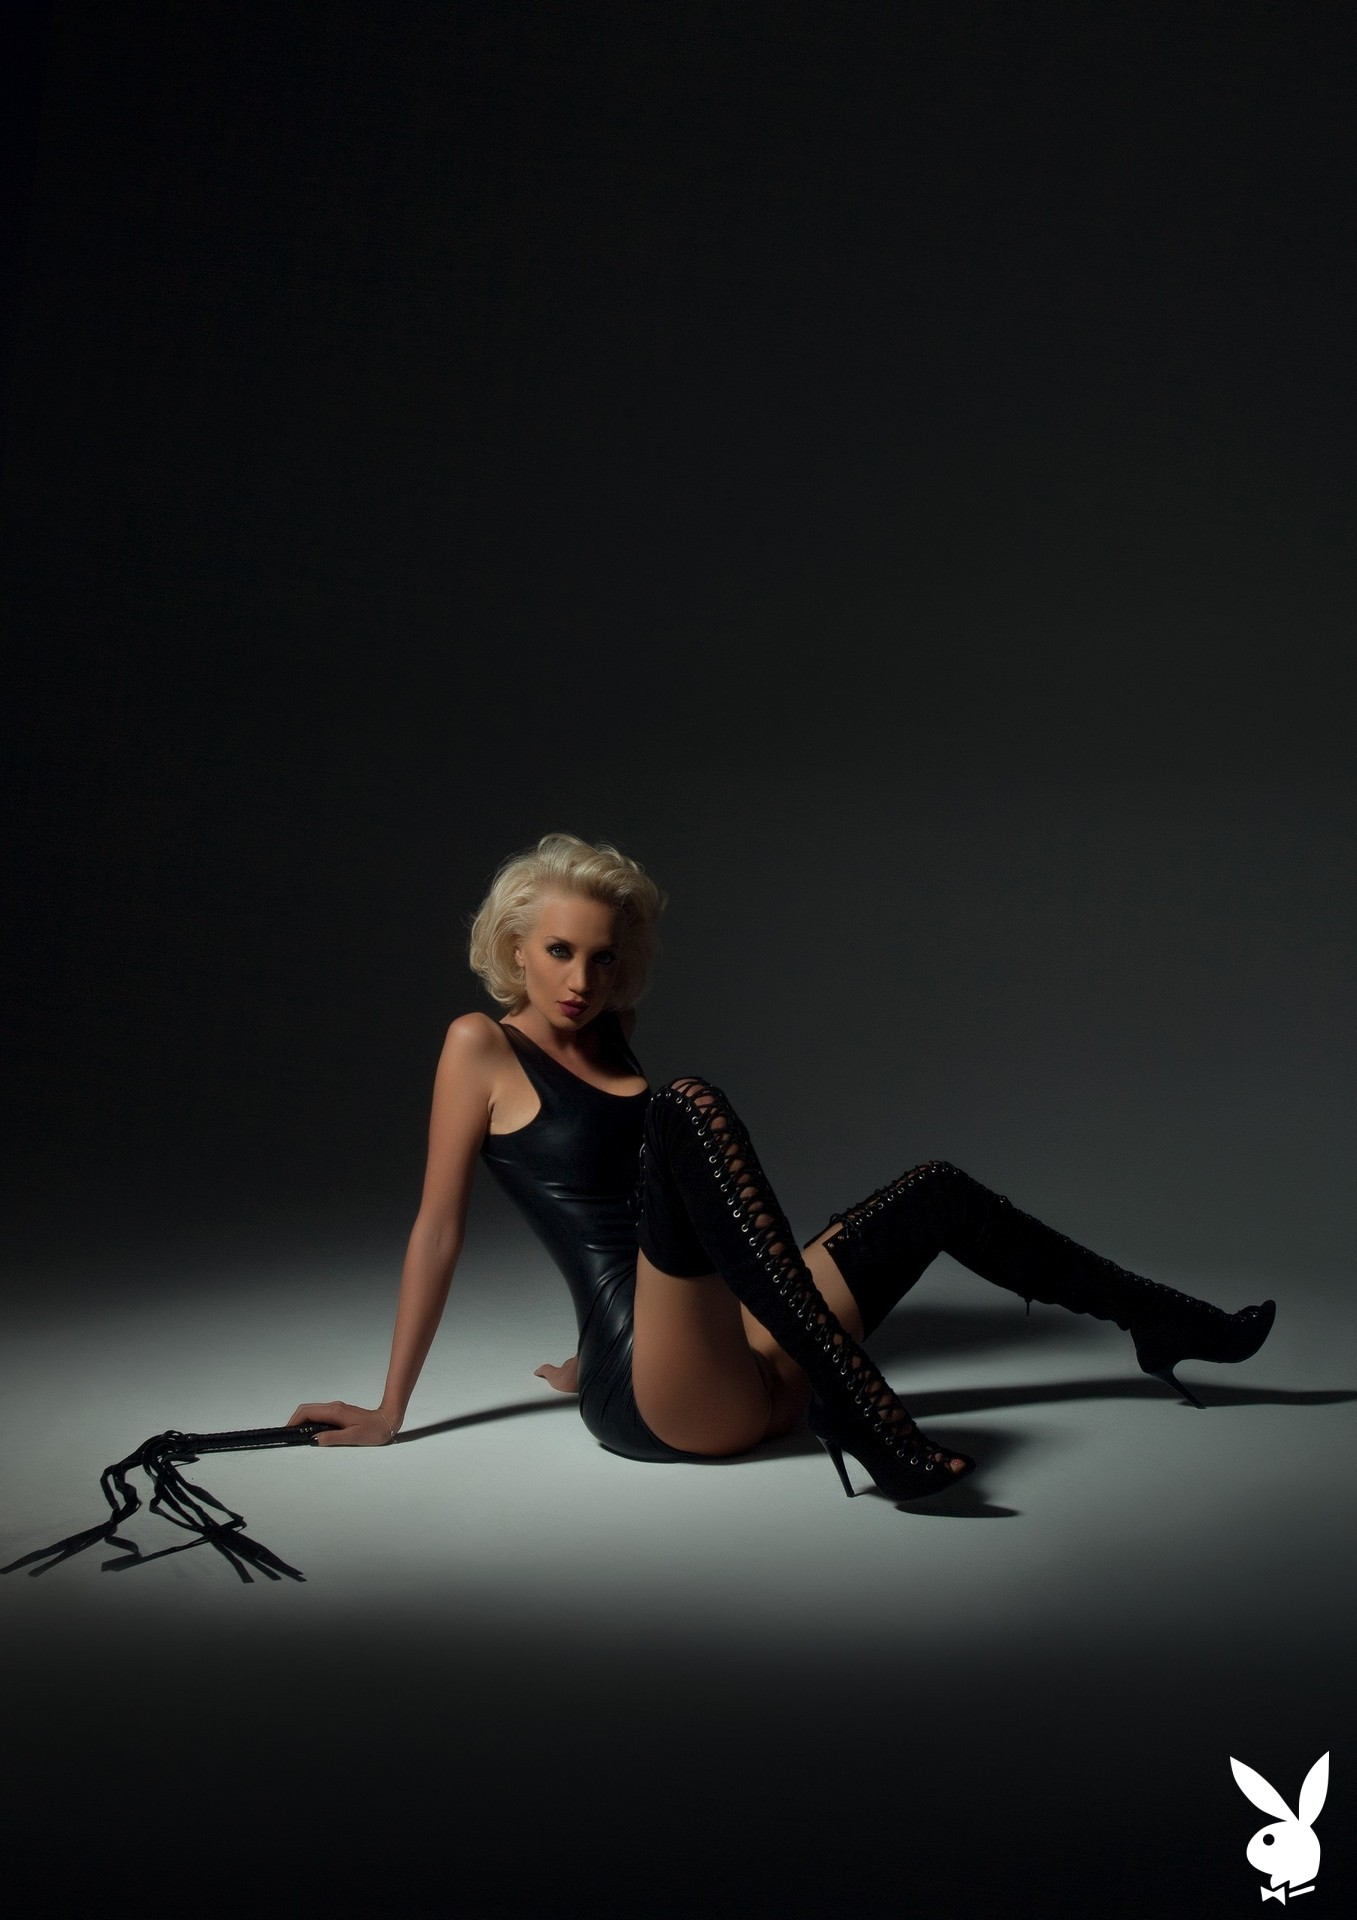 Thigh High Boots, Lace Up Boots, Black Thigh High Boots, Black Lace Up Boots, Whip, Leather Whip, Black Latex, Black Leather, Bdsm, Fetish